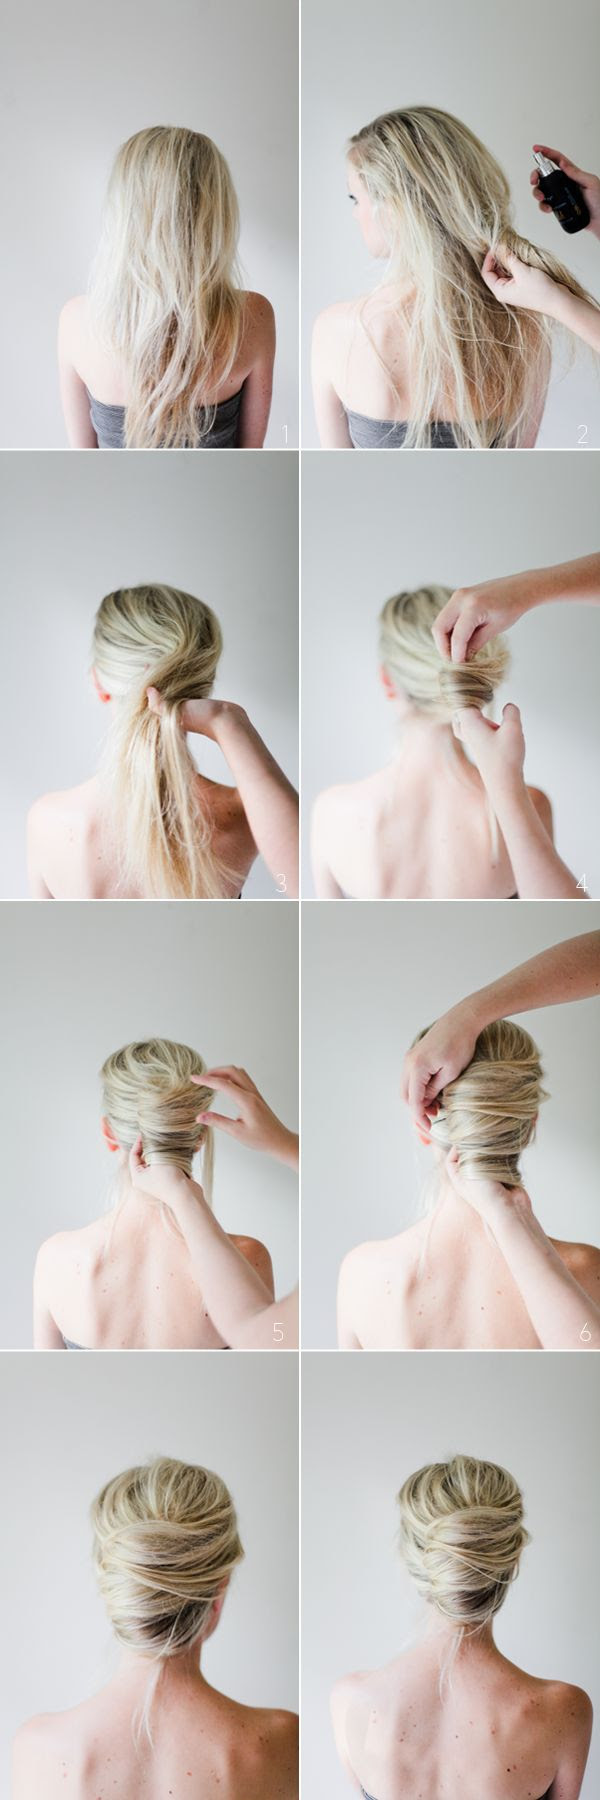 Messy French Twist Tutorial.  Hair tutorial